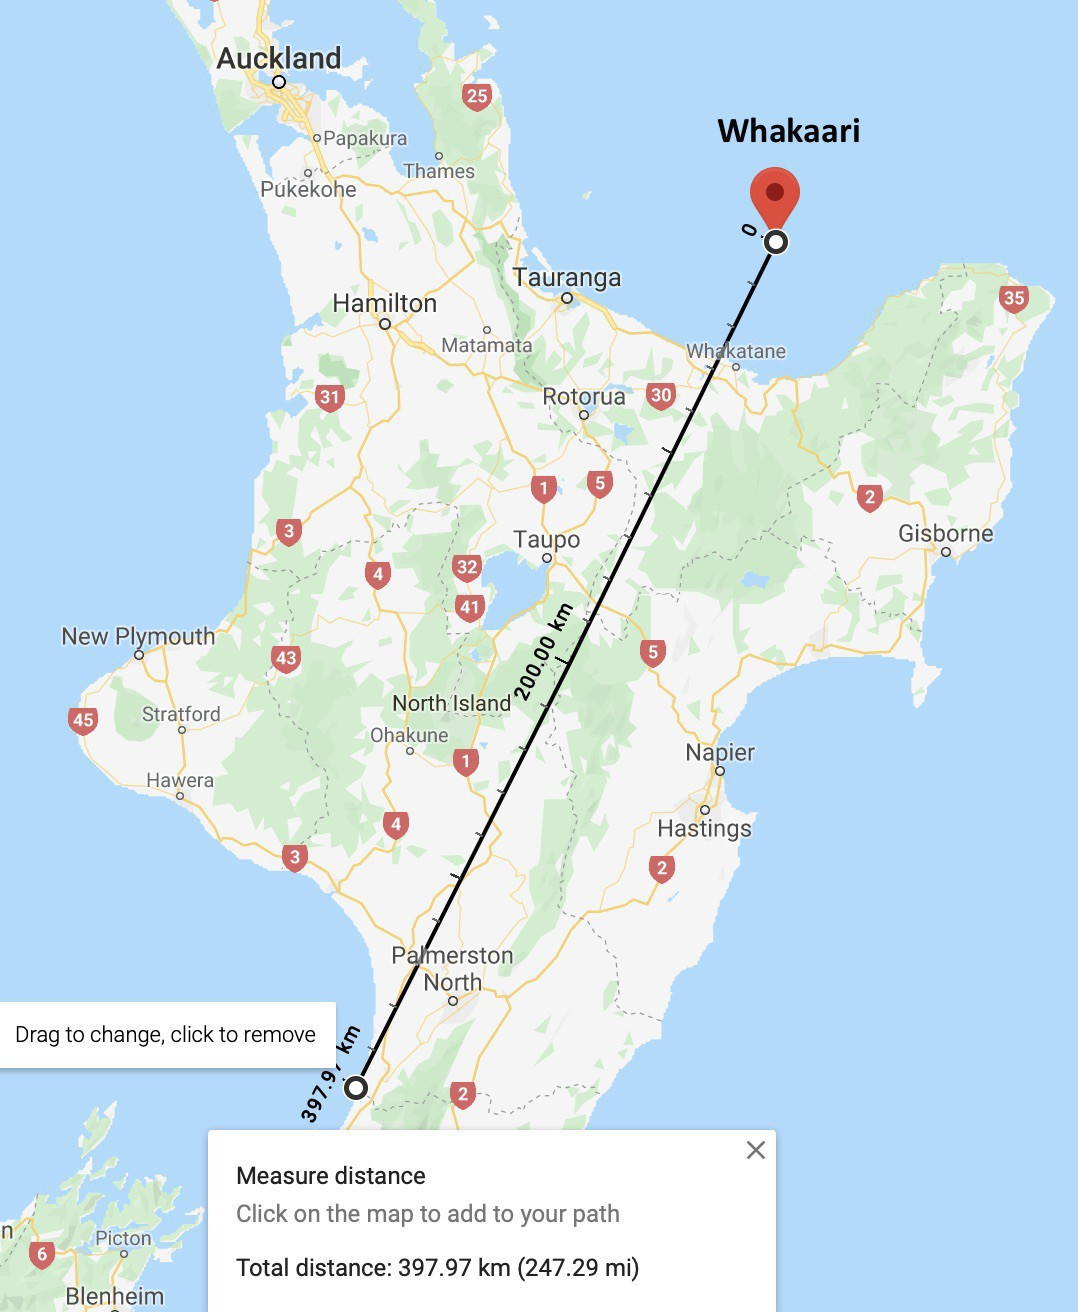 Map showing a 400Km distance from my home to Whakaari.